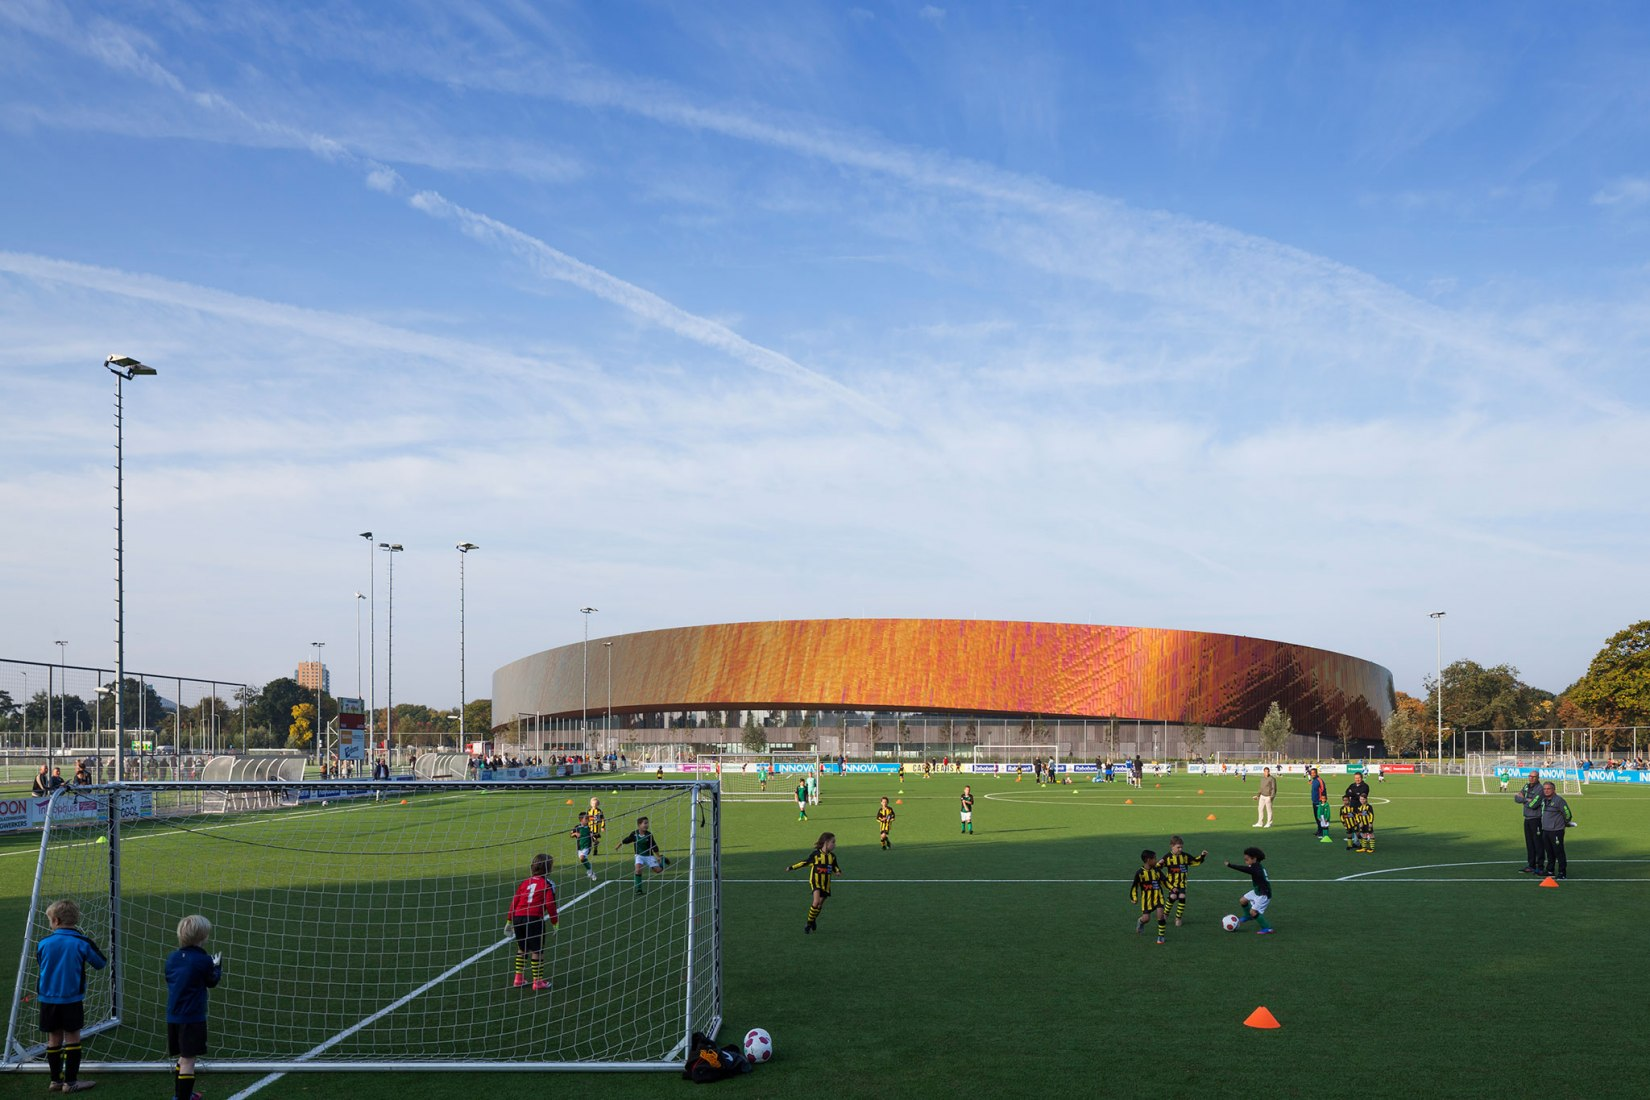 Football field. Sportcampus Zuiderpark by FaulknerBrowns Architects. Photograph © Scagliola Brakkee